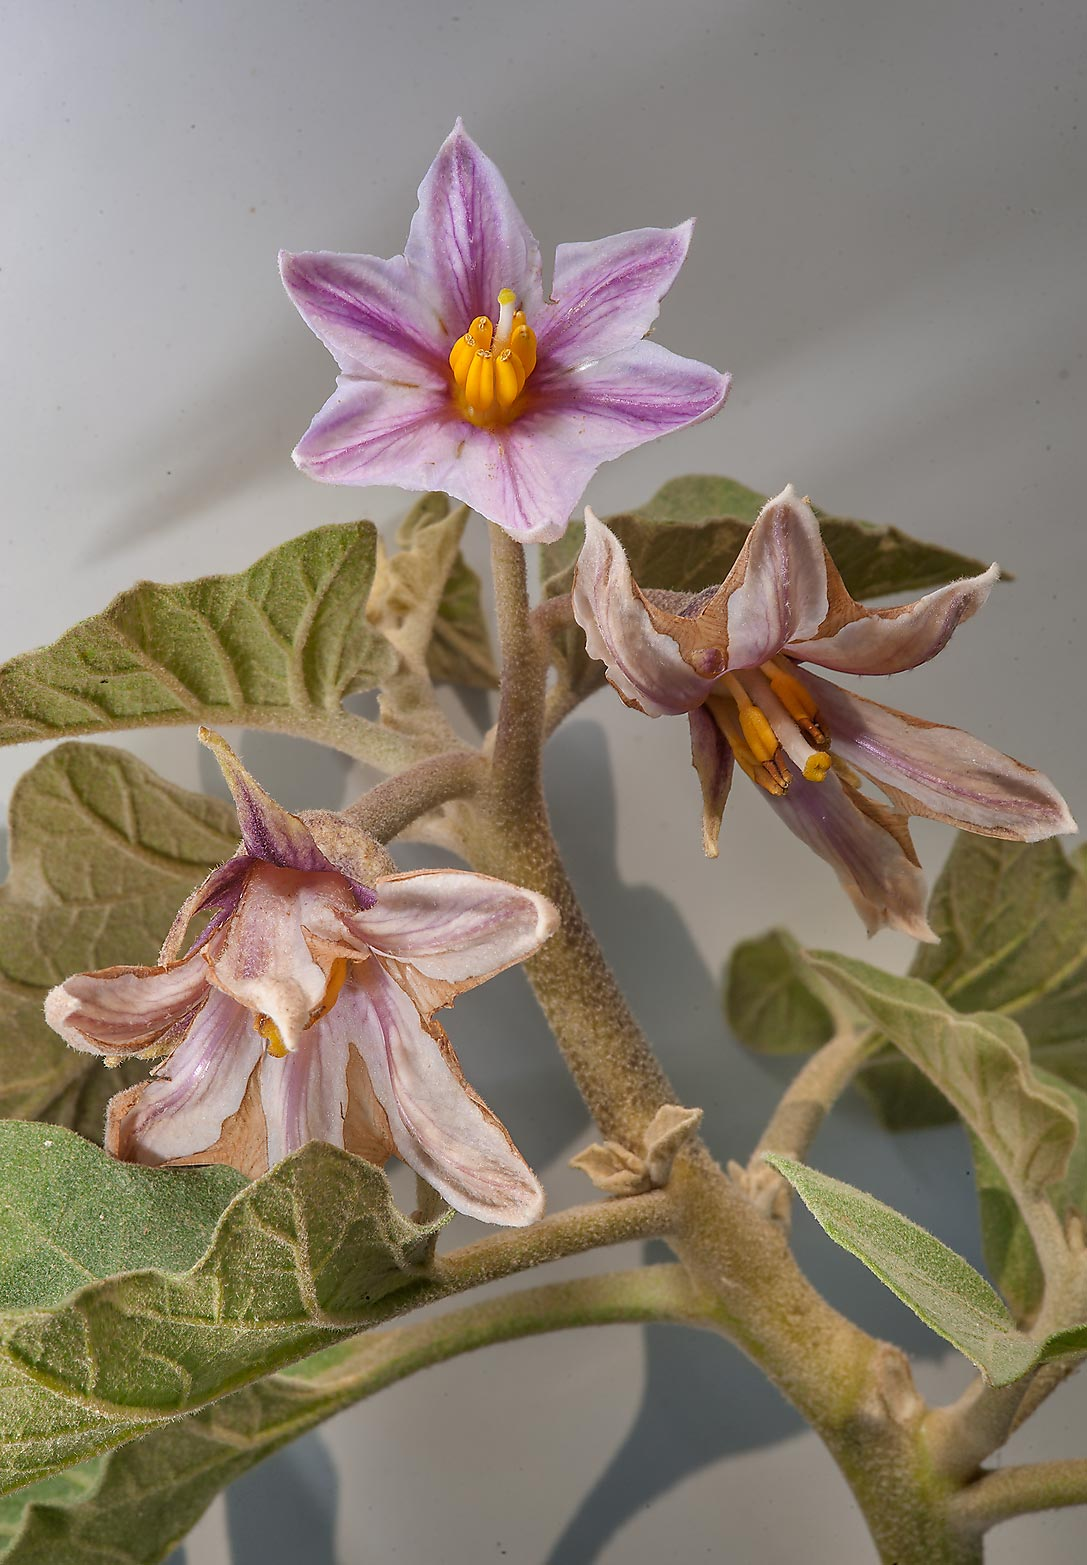 Blooming eggplant (Solanum melongena) near a...between Mesayeed and Harrarah. Qatar